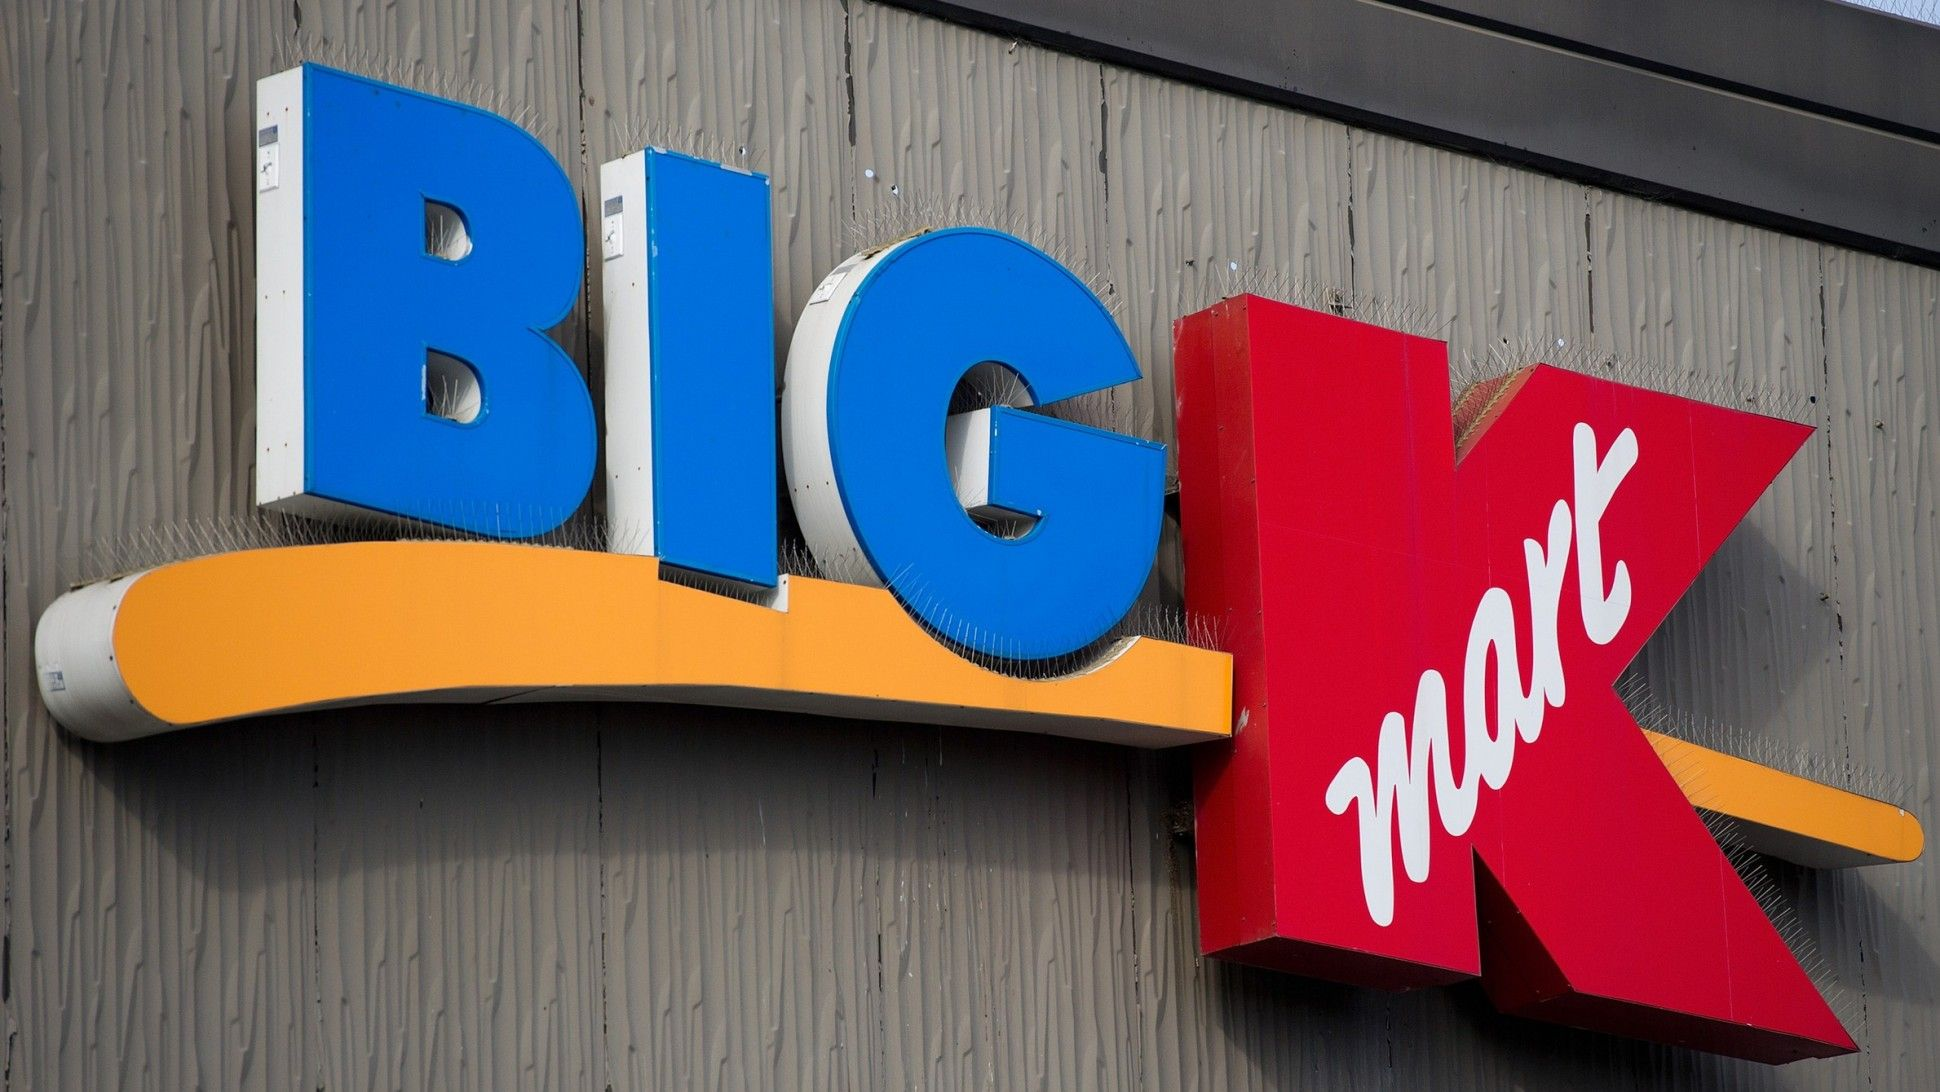 Finding a Kmart near me now is easier than ever with our